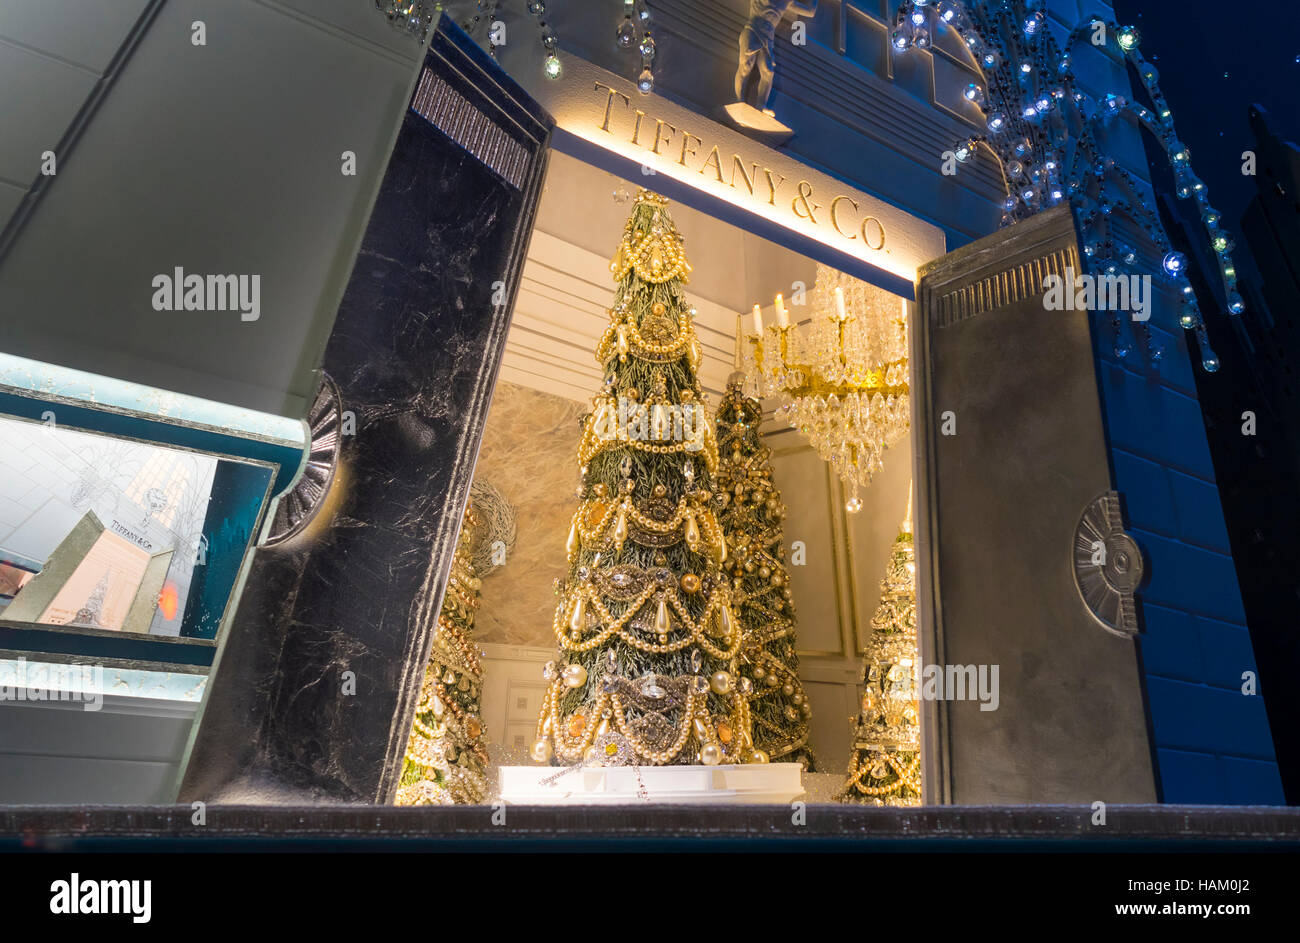 c97c8363ccd3c Christmas tree in Tiffany   Co. window display on Fifth Avenue in New York  City